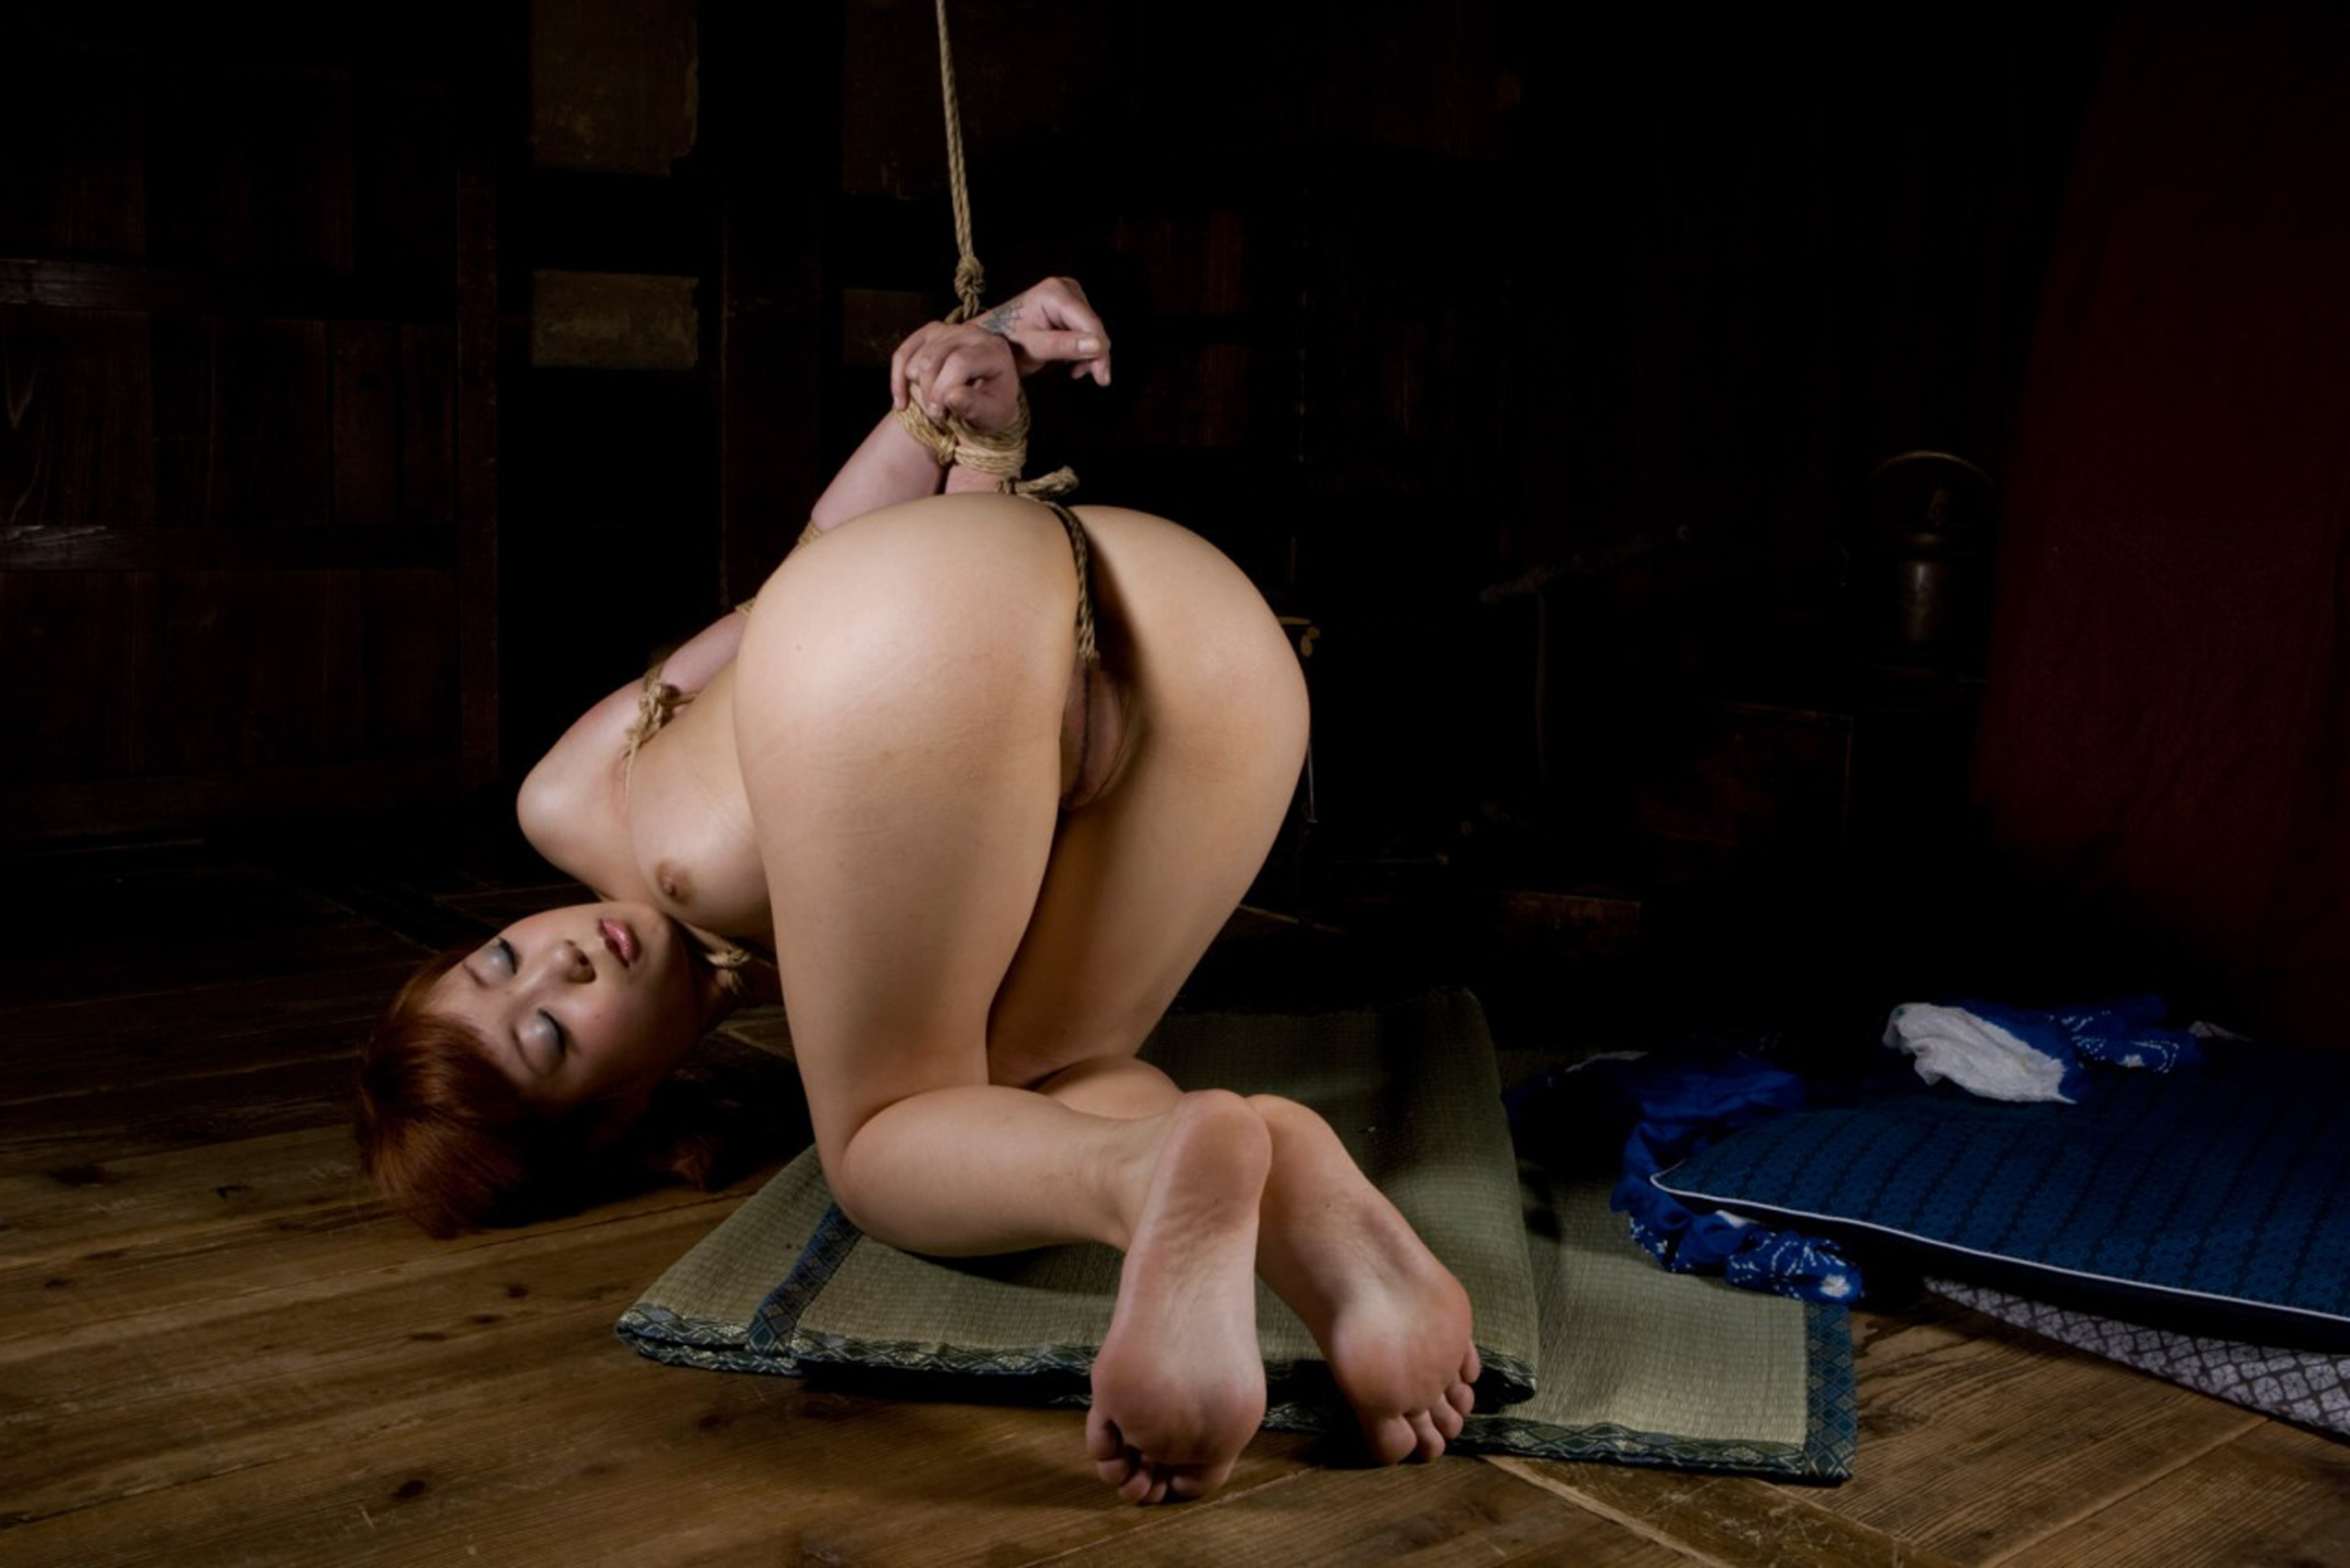 Karin mracek and bondage